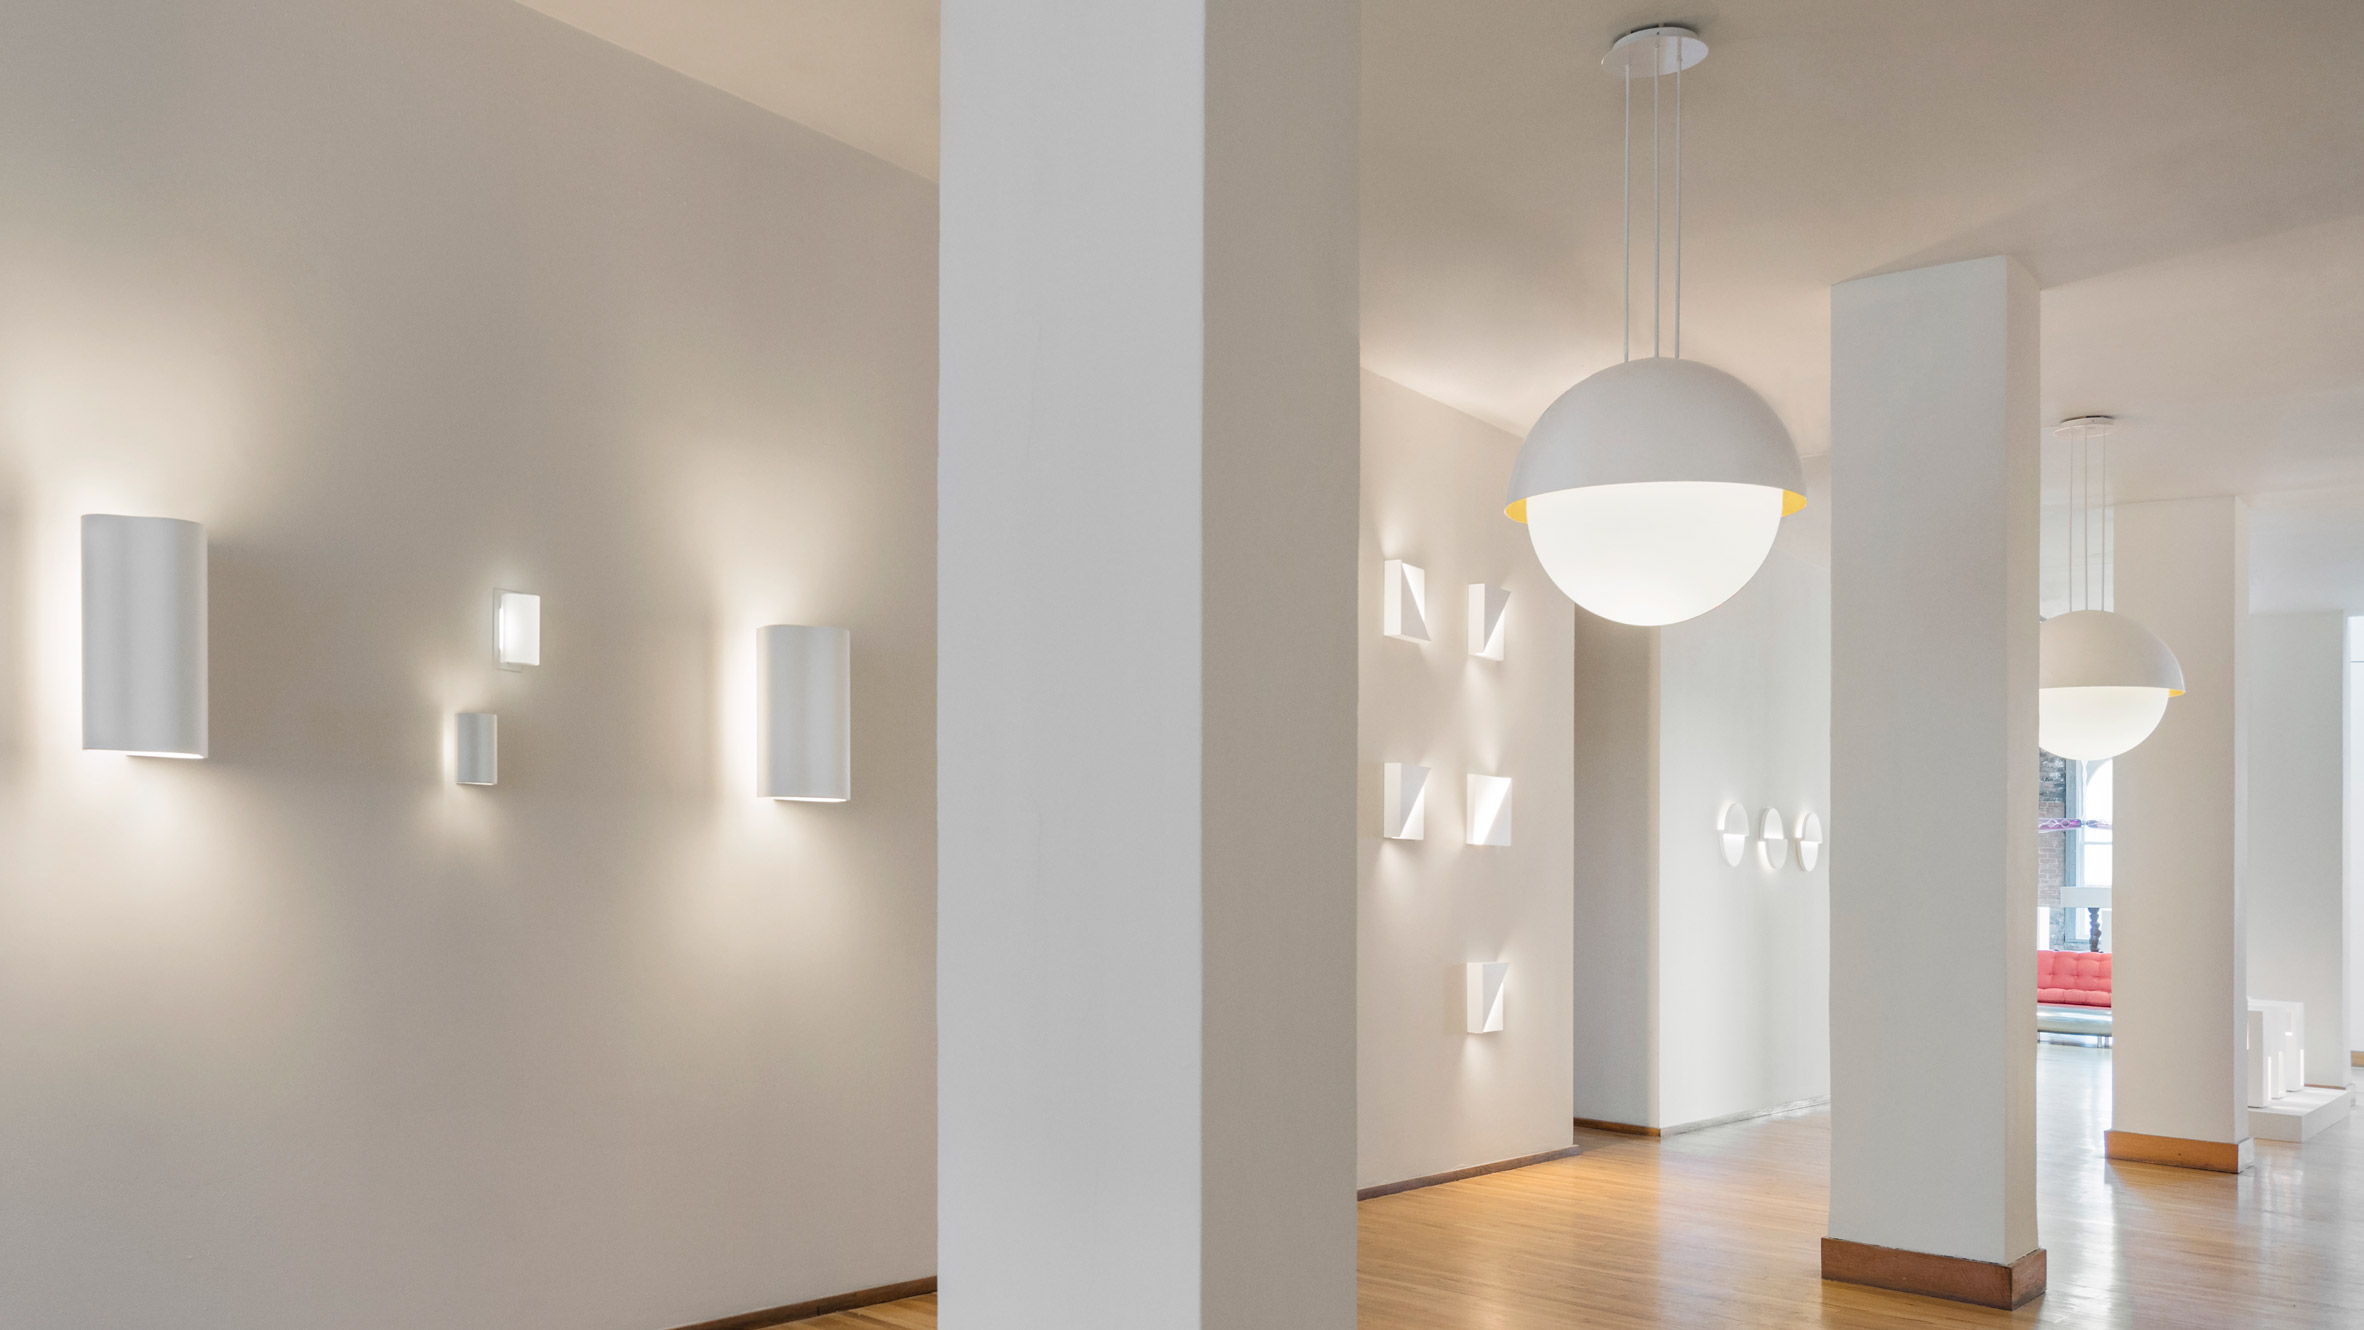 Fall in Love with Richard Meier's Minimal Lighting Collection 1 lighting collection Fall in Love with Richard Meier's Minimal Lighting Collection Fall in Love with Richard Meiers Minimal Lighting Collection 1